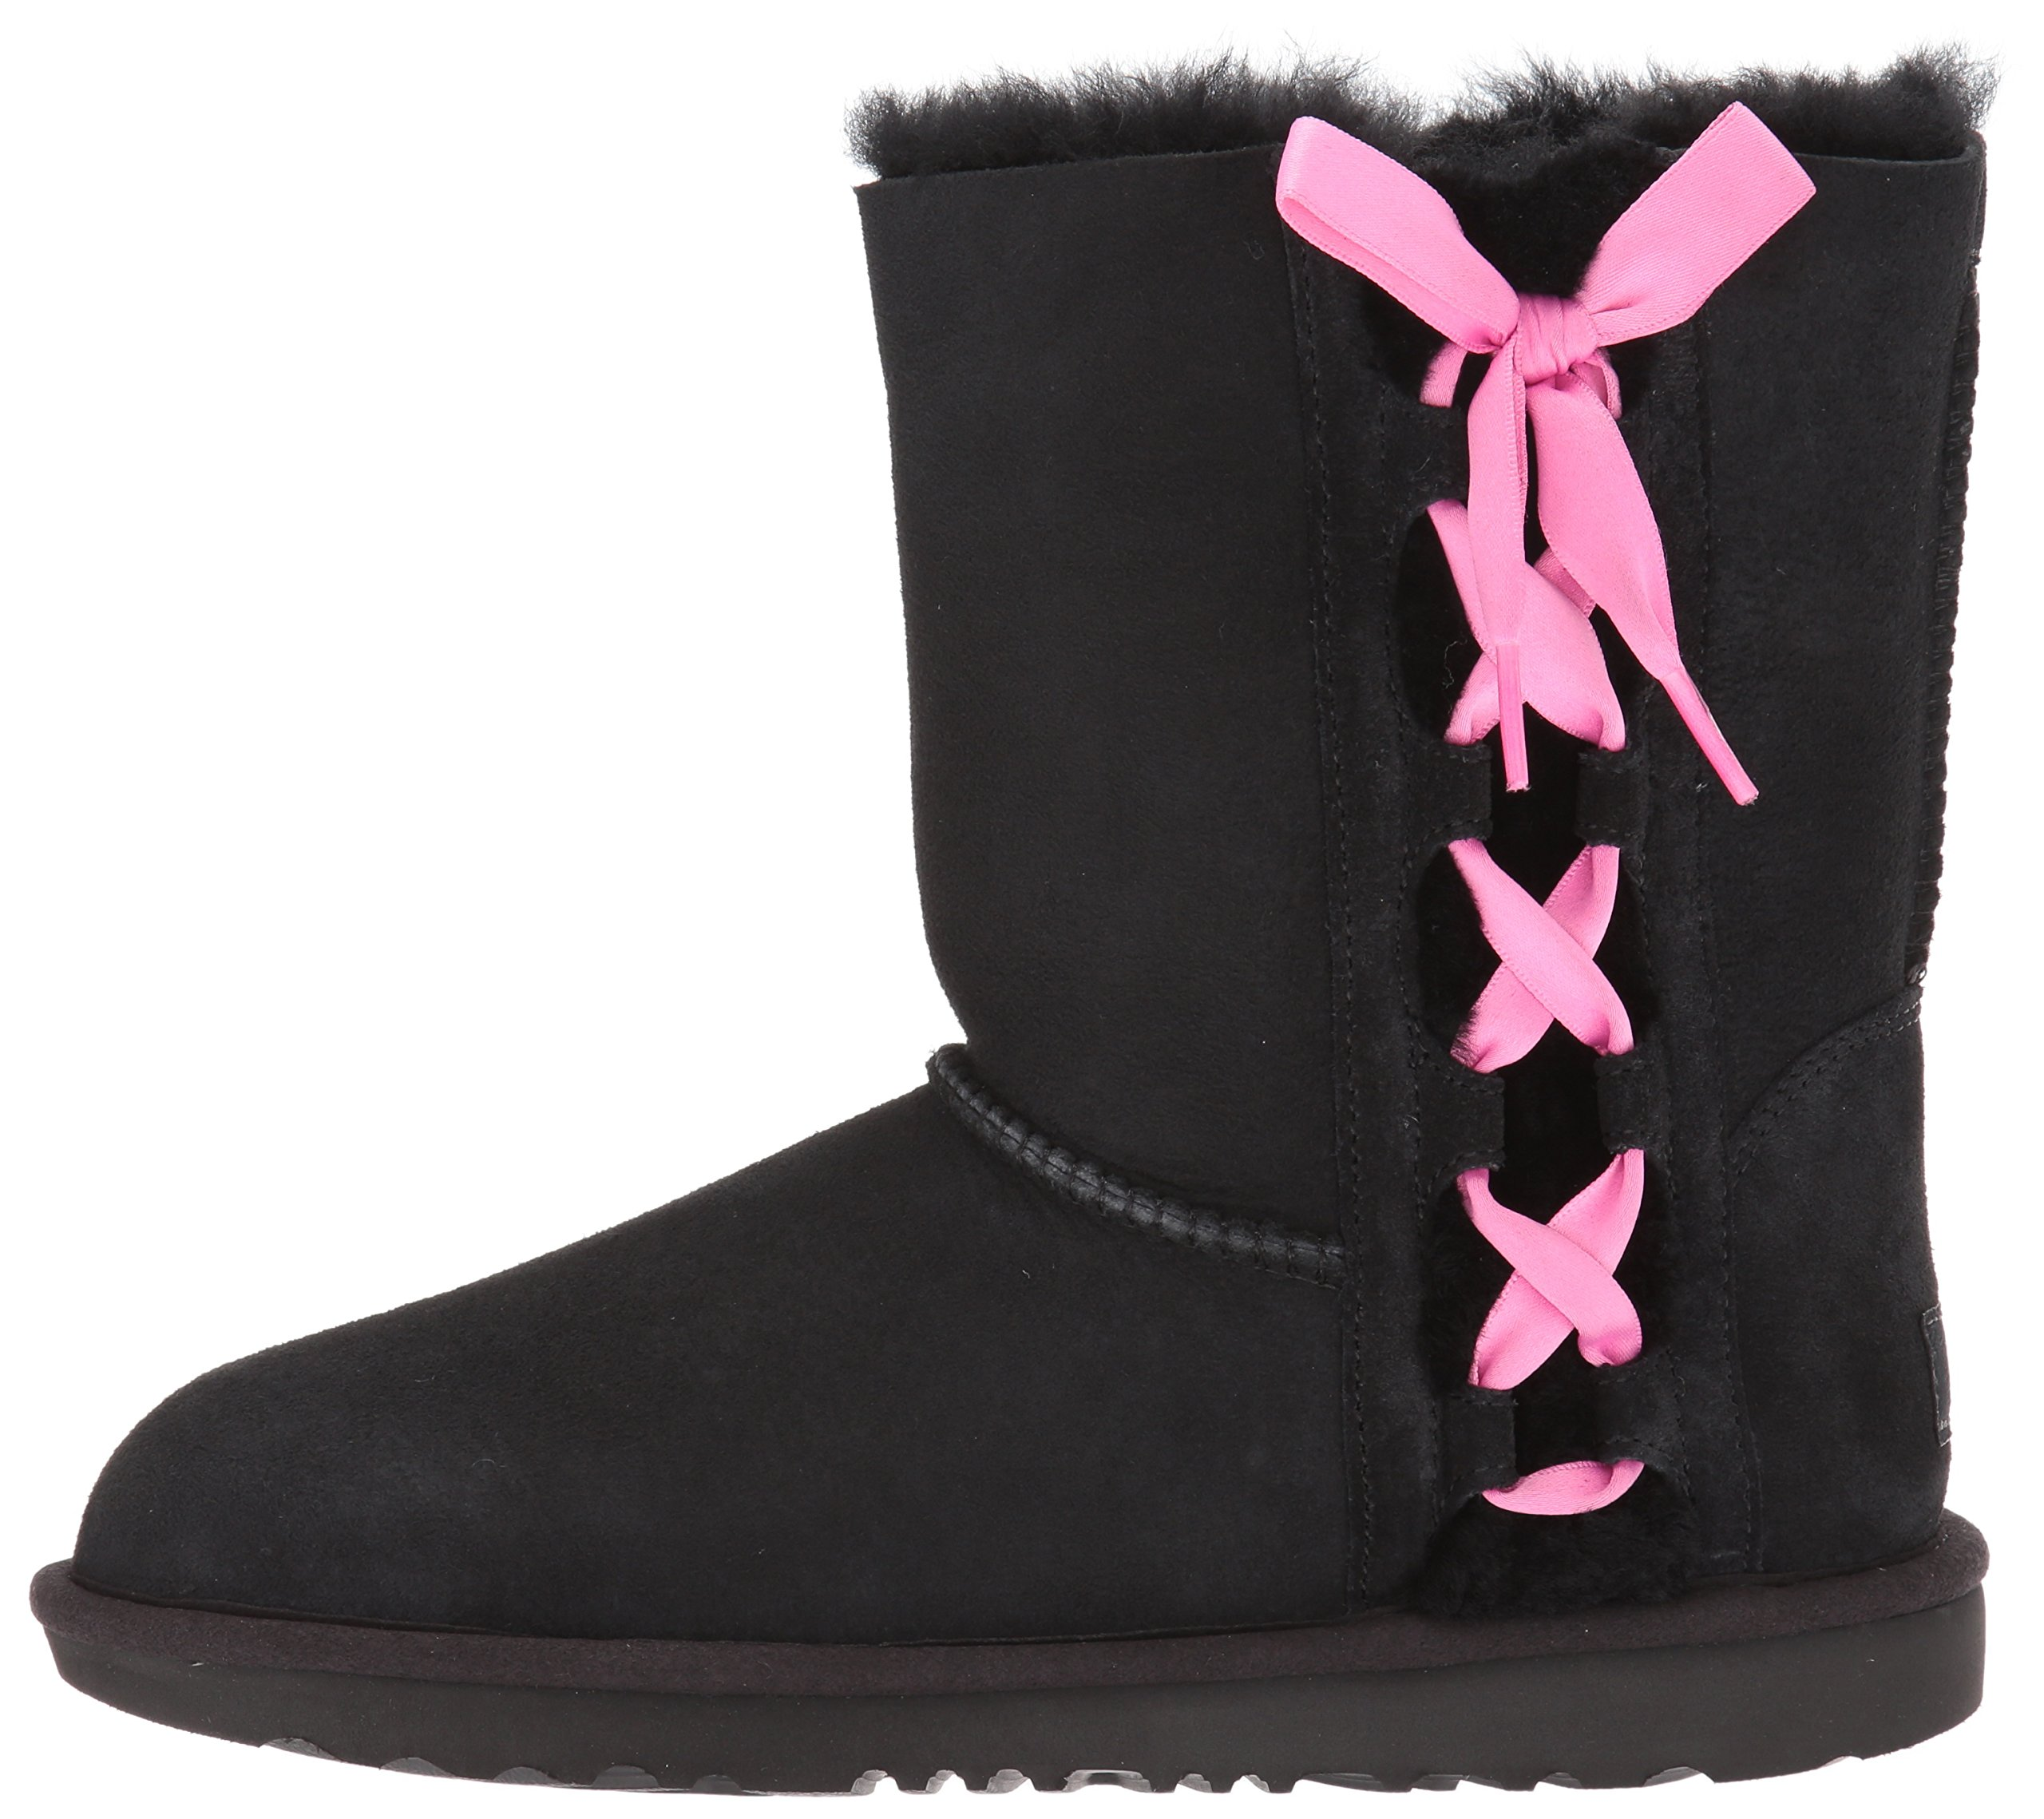 UGG Girls K Pala Pull-on Boot, Black, 1 M US Little Kid by UGG (Image #5)